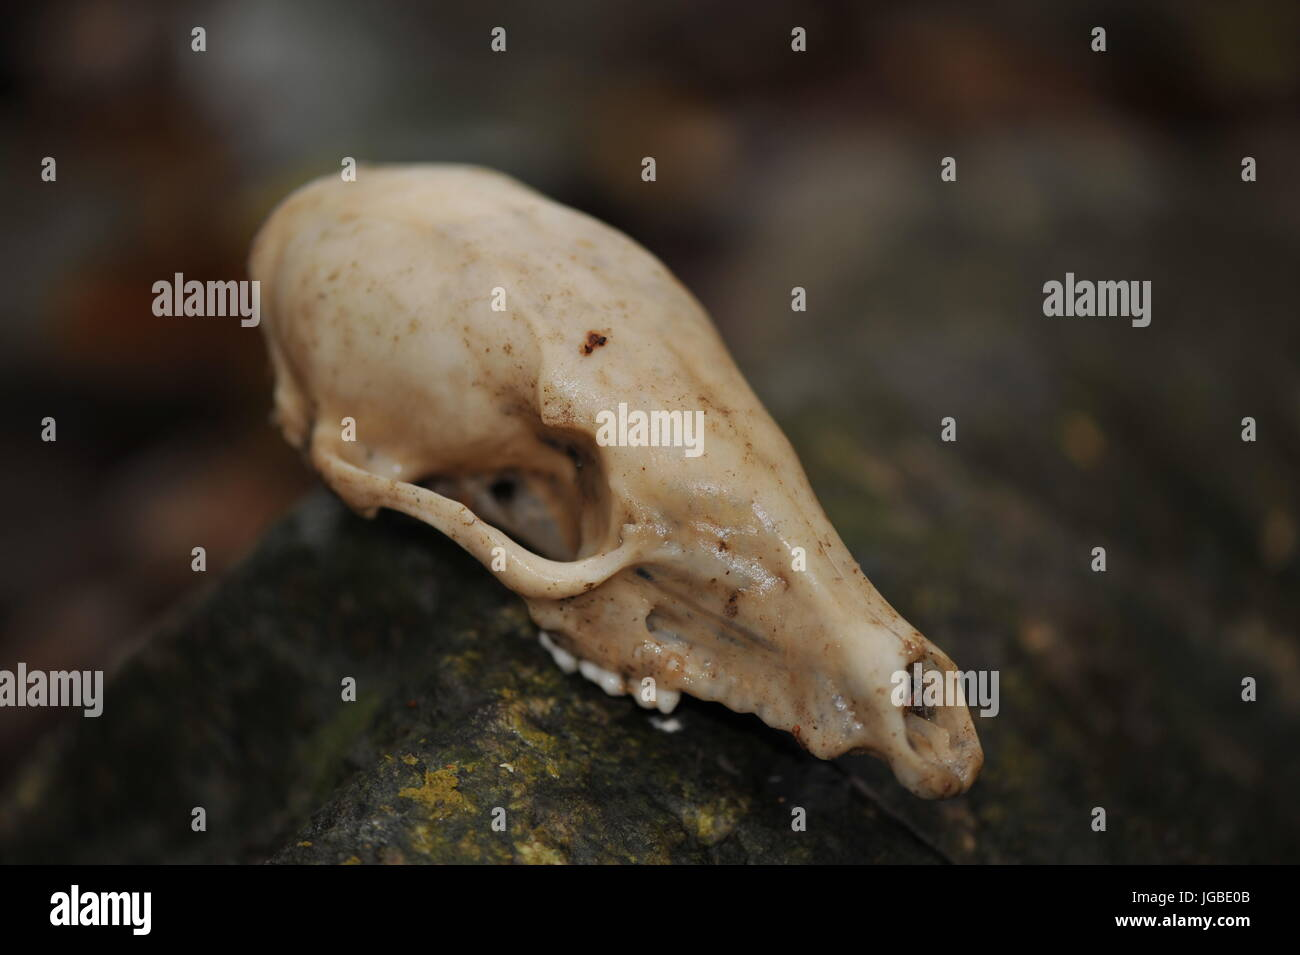 Small animal skull displayed on stone boulder in jungle costa rica Stock Photo